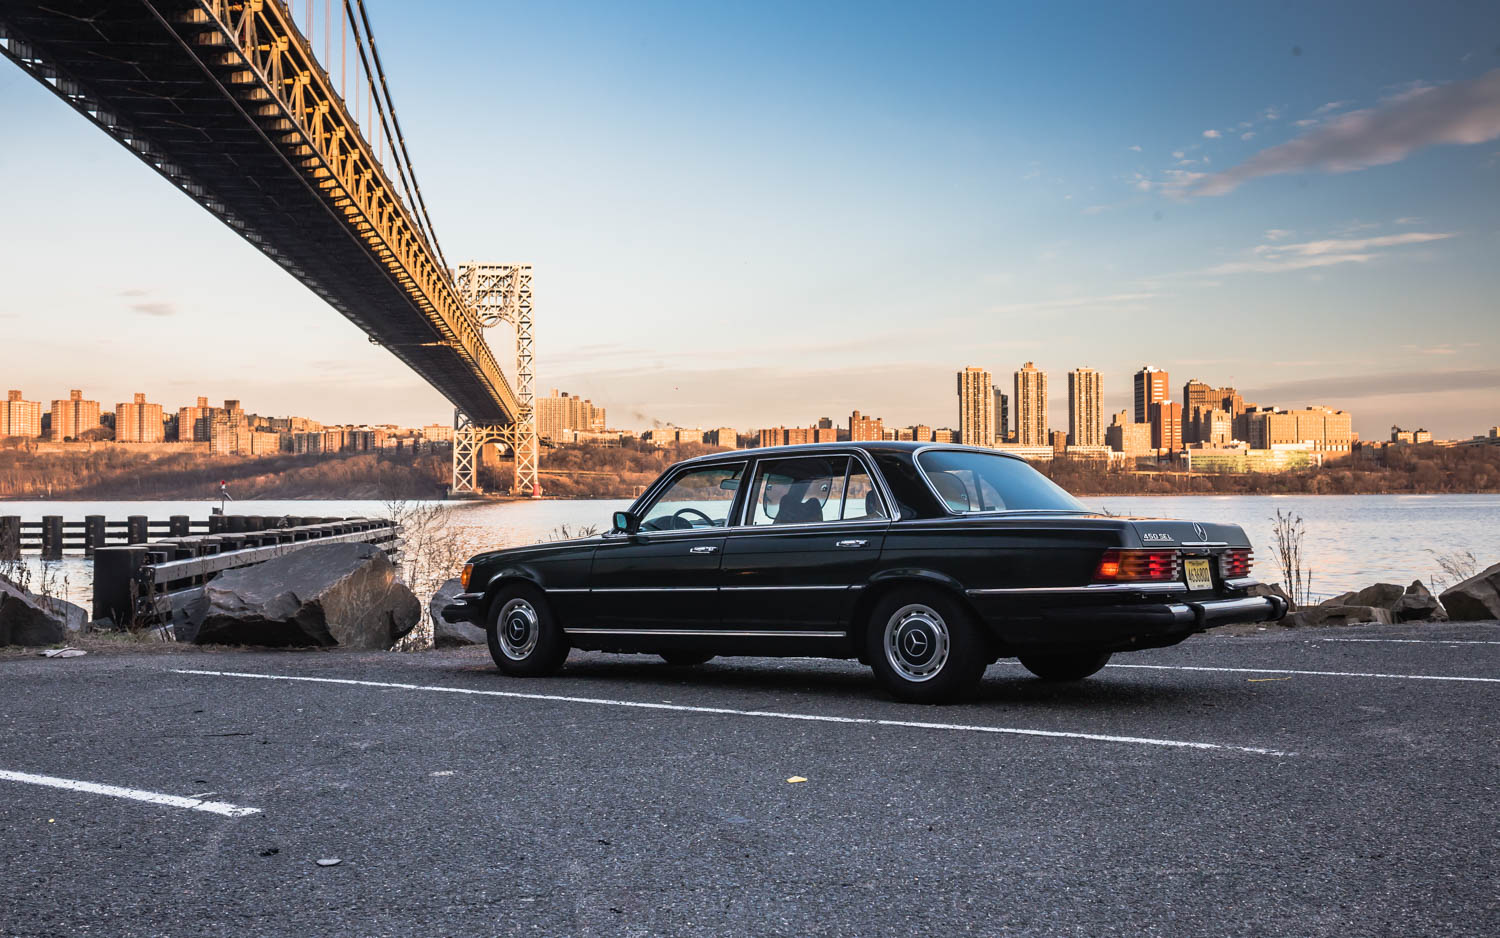 1974 Mercedes-Benz 450SEL under a bridge